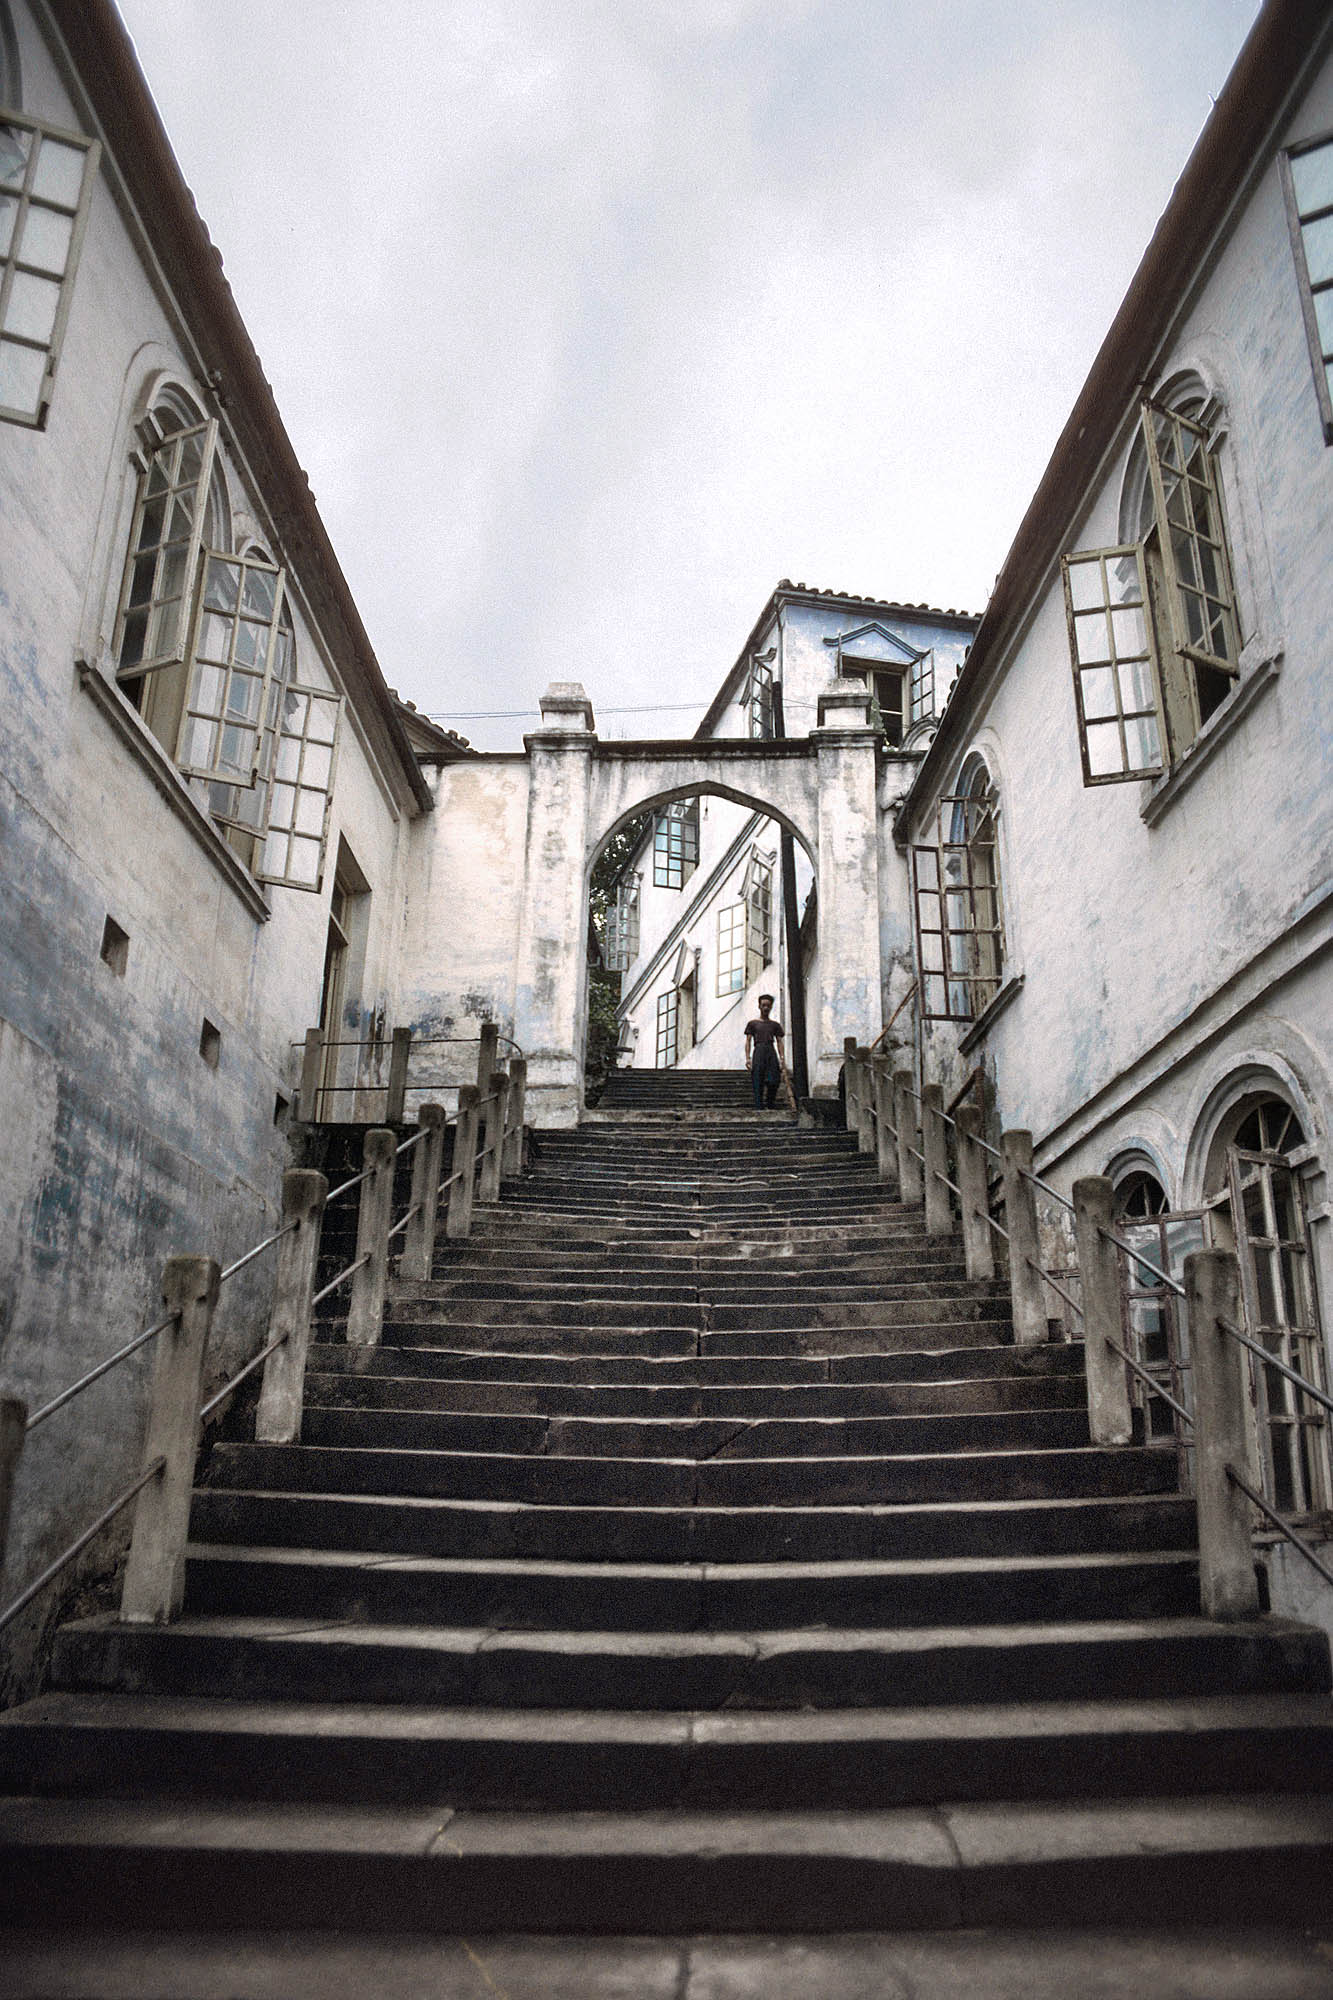 81-anhuistaircase